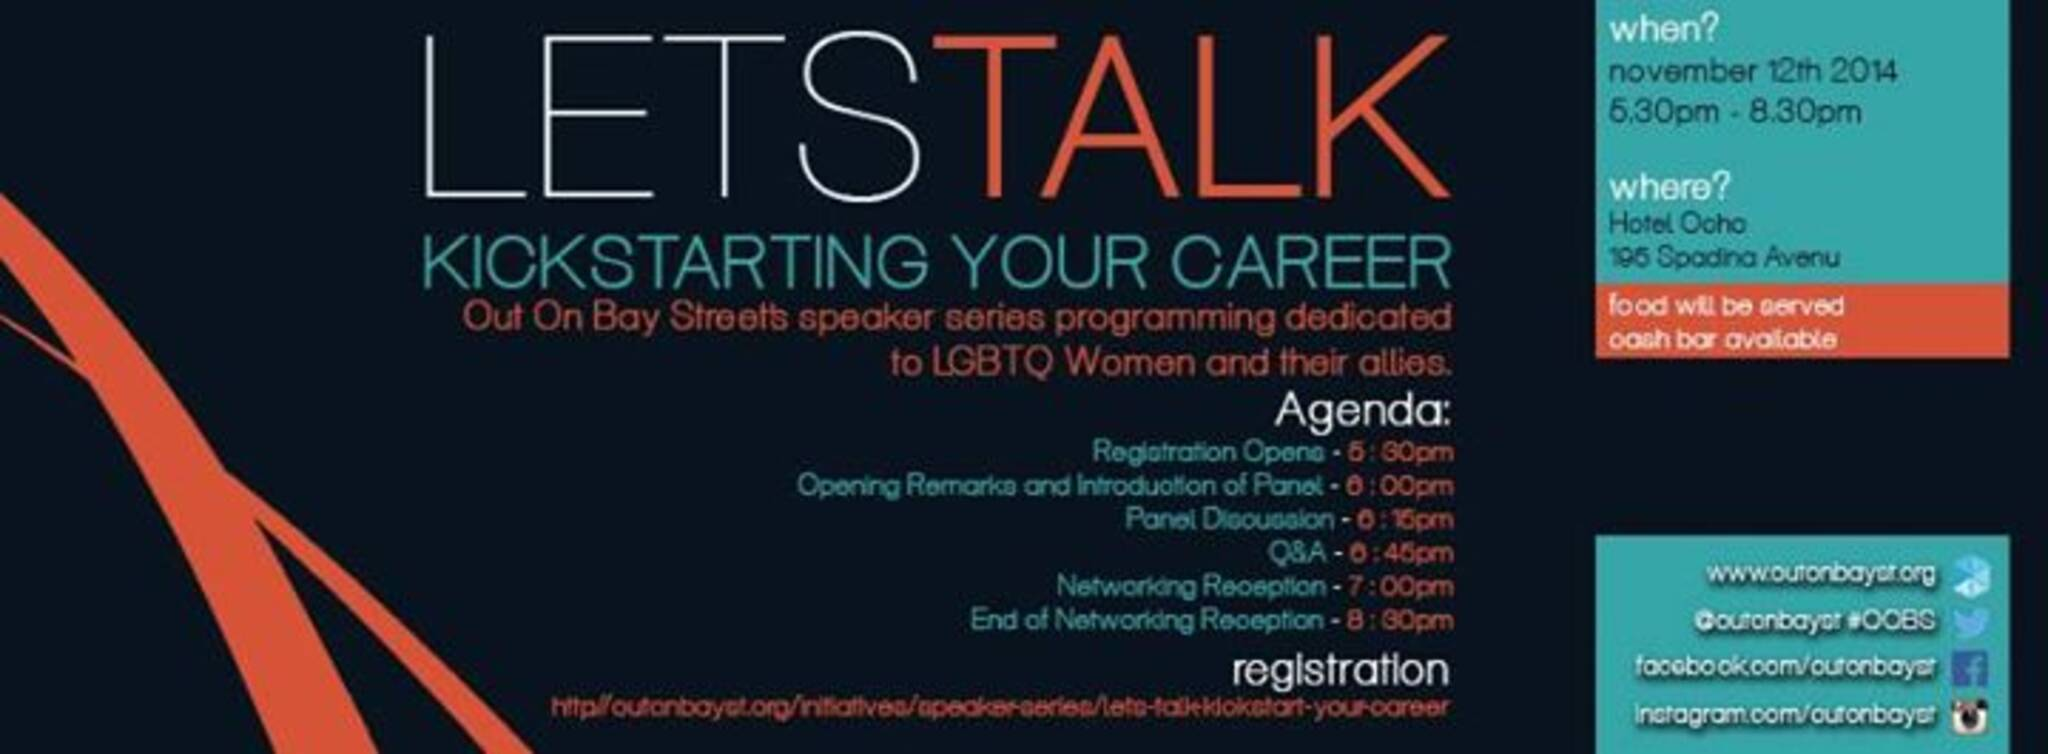 cf14bbe3093 Lets Talk Kickstart Your Career - Presented By TD Bank